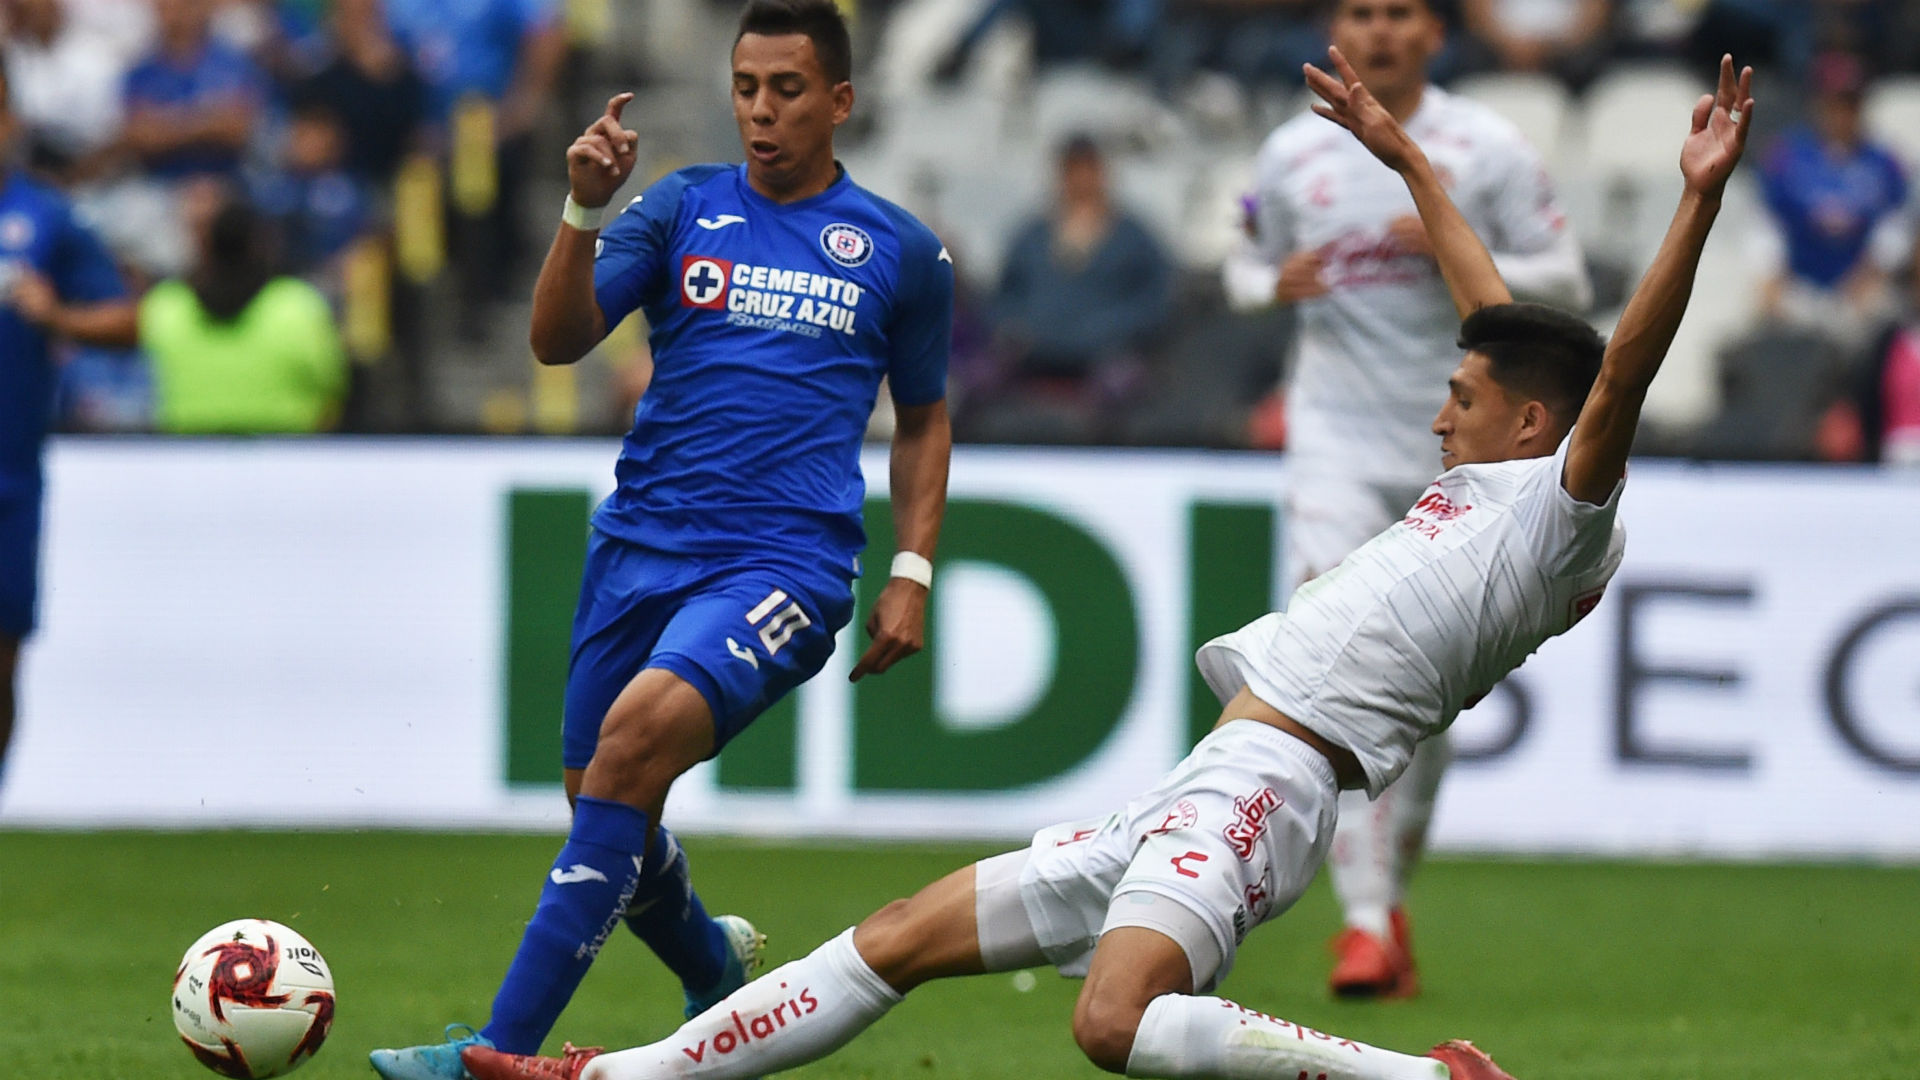 Liga MX schedule, TV times as Mexico's top soccer league continues play during coronavirus outbreak